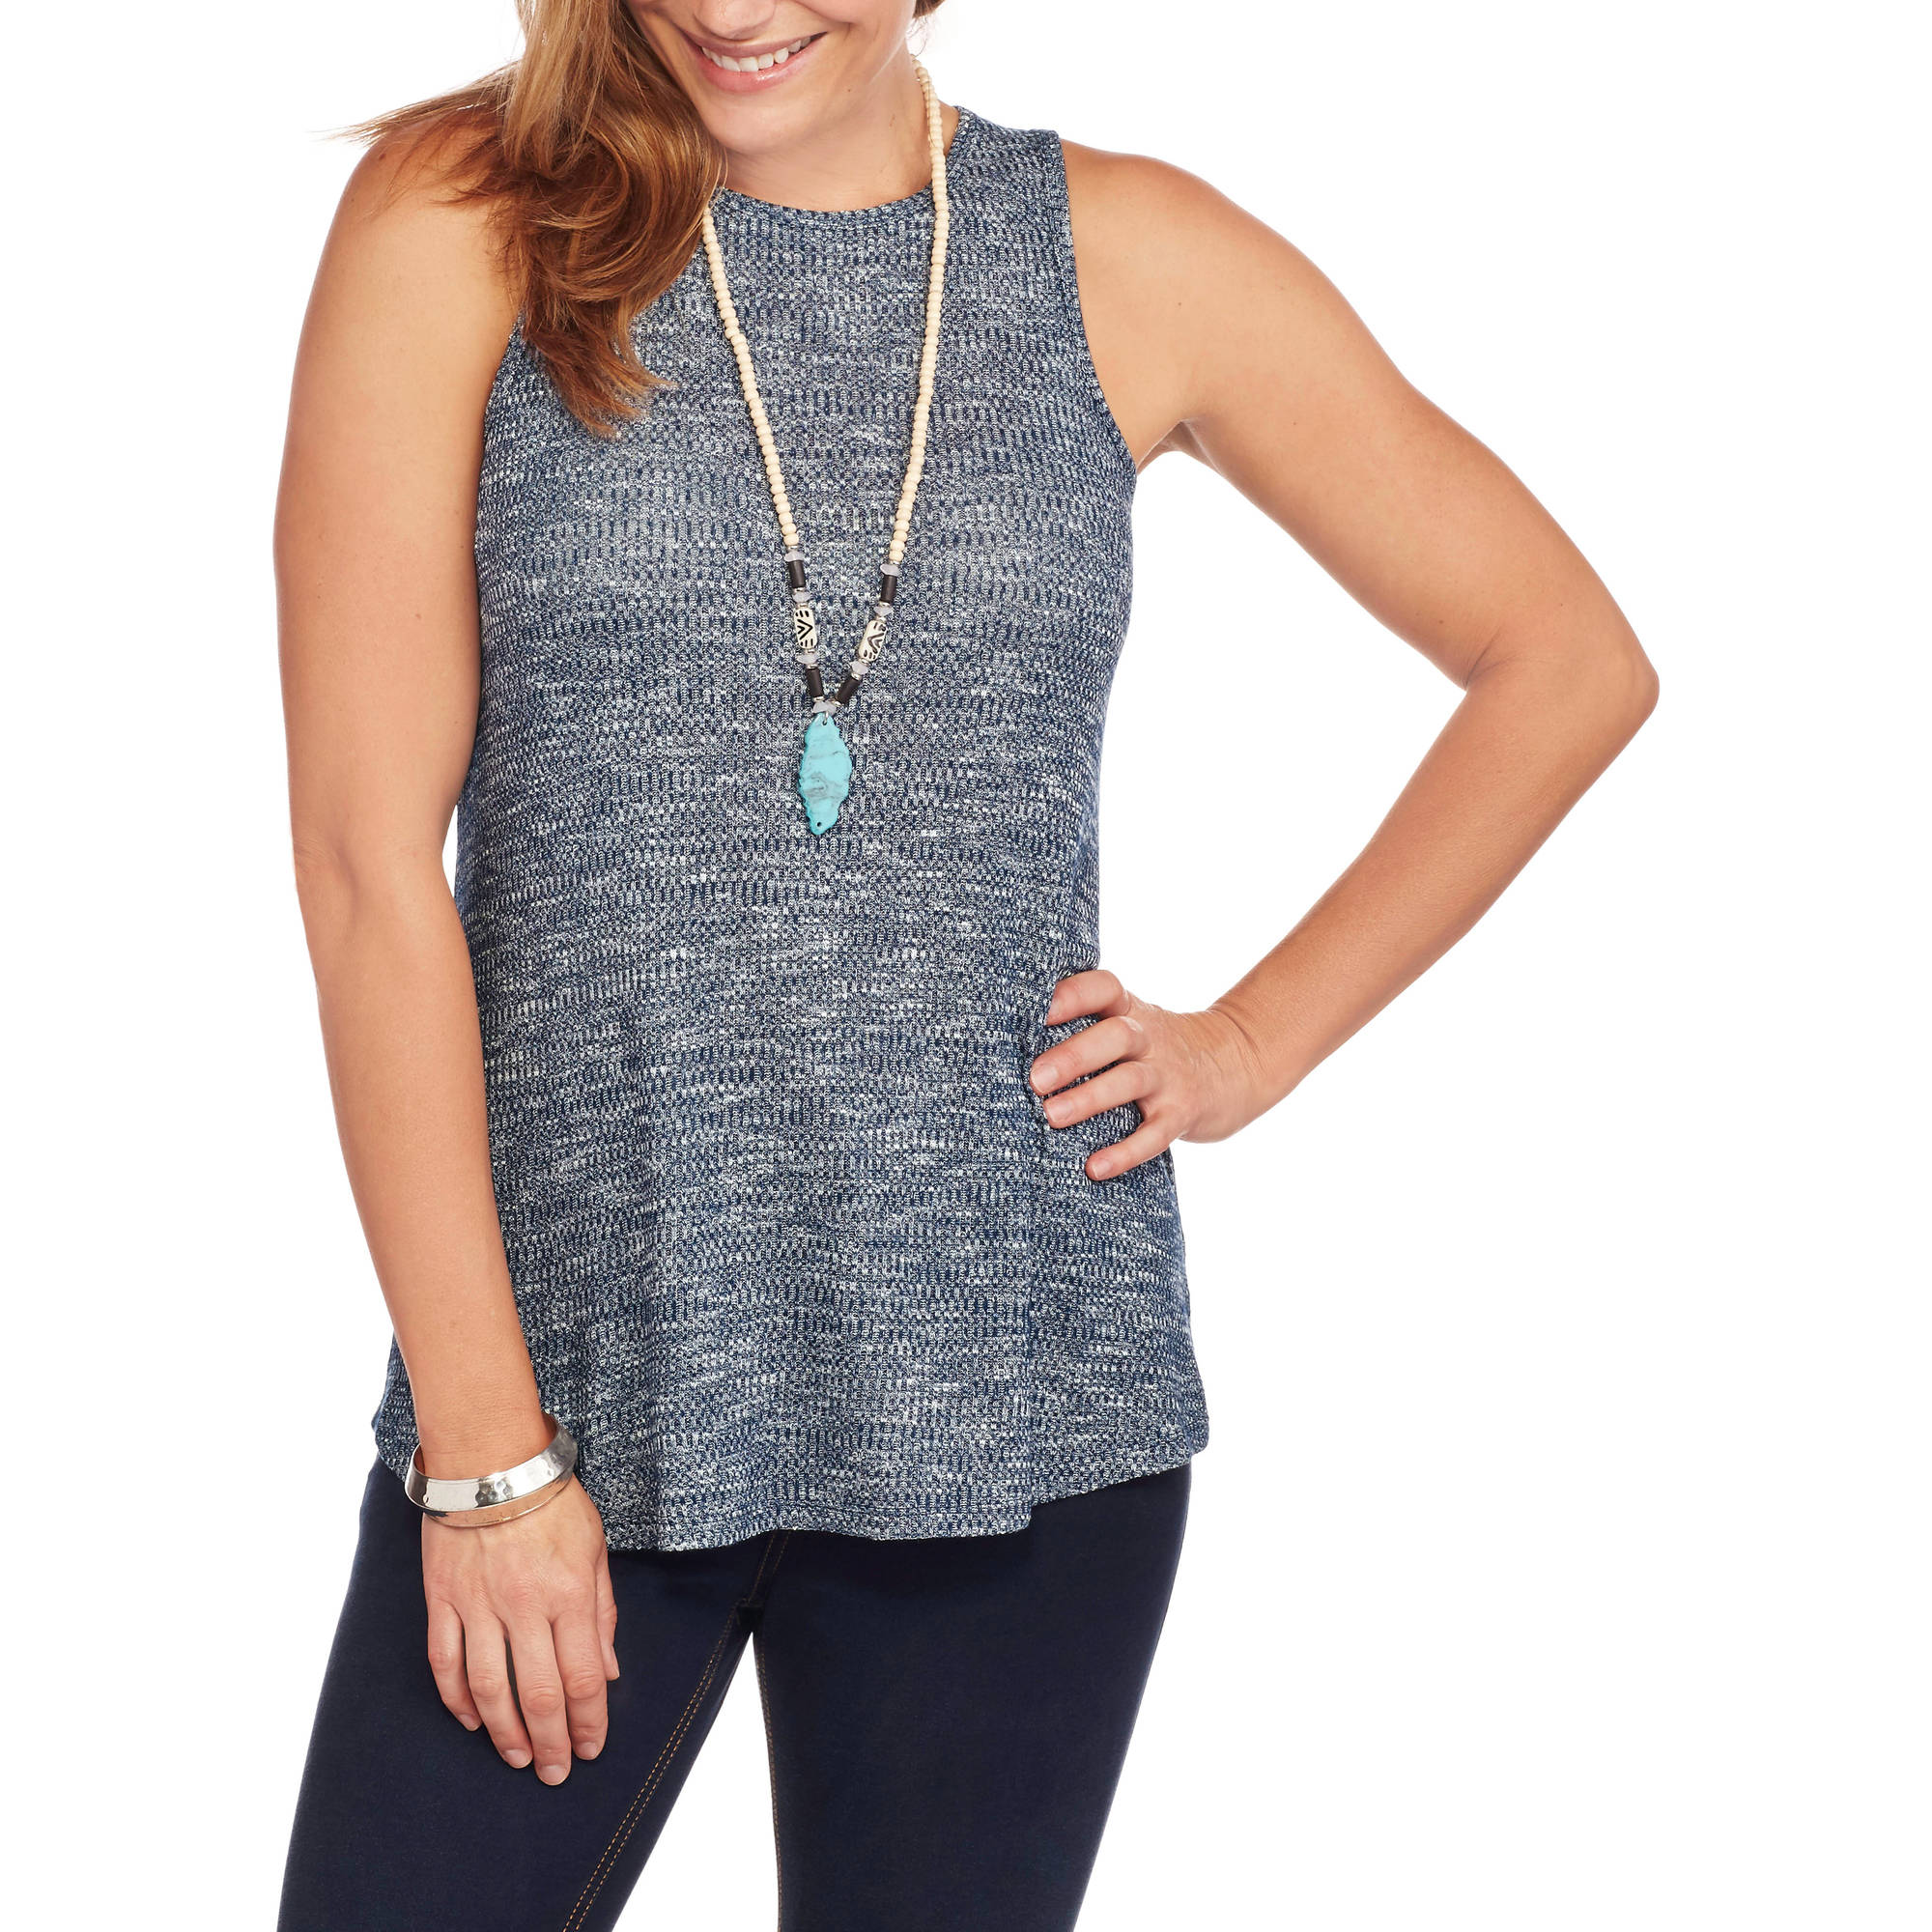 Faded Glory Women's Soft Ribbed Swing Tank Top